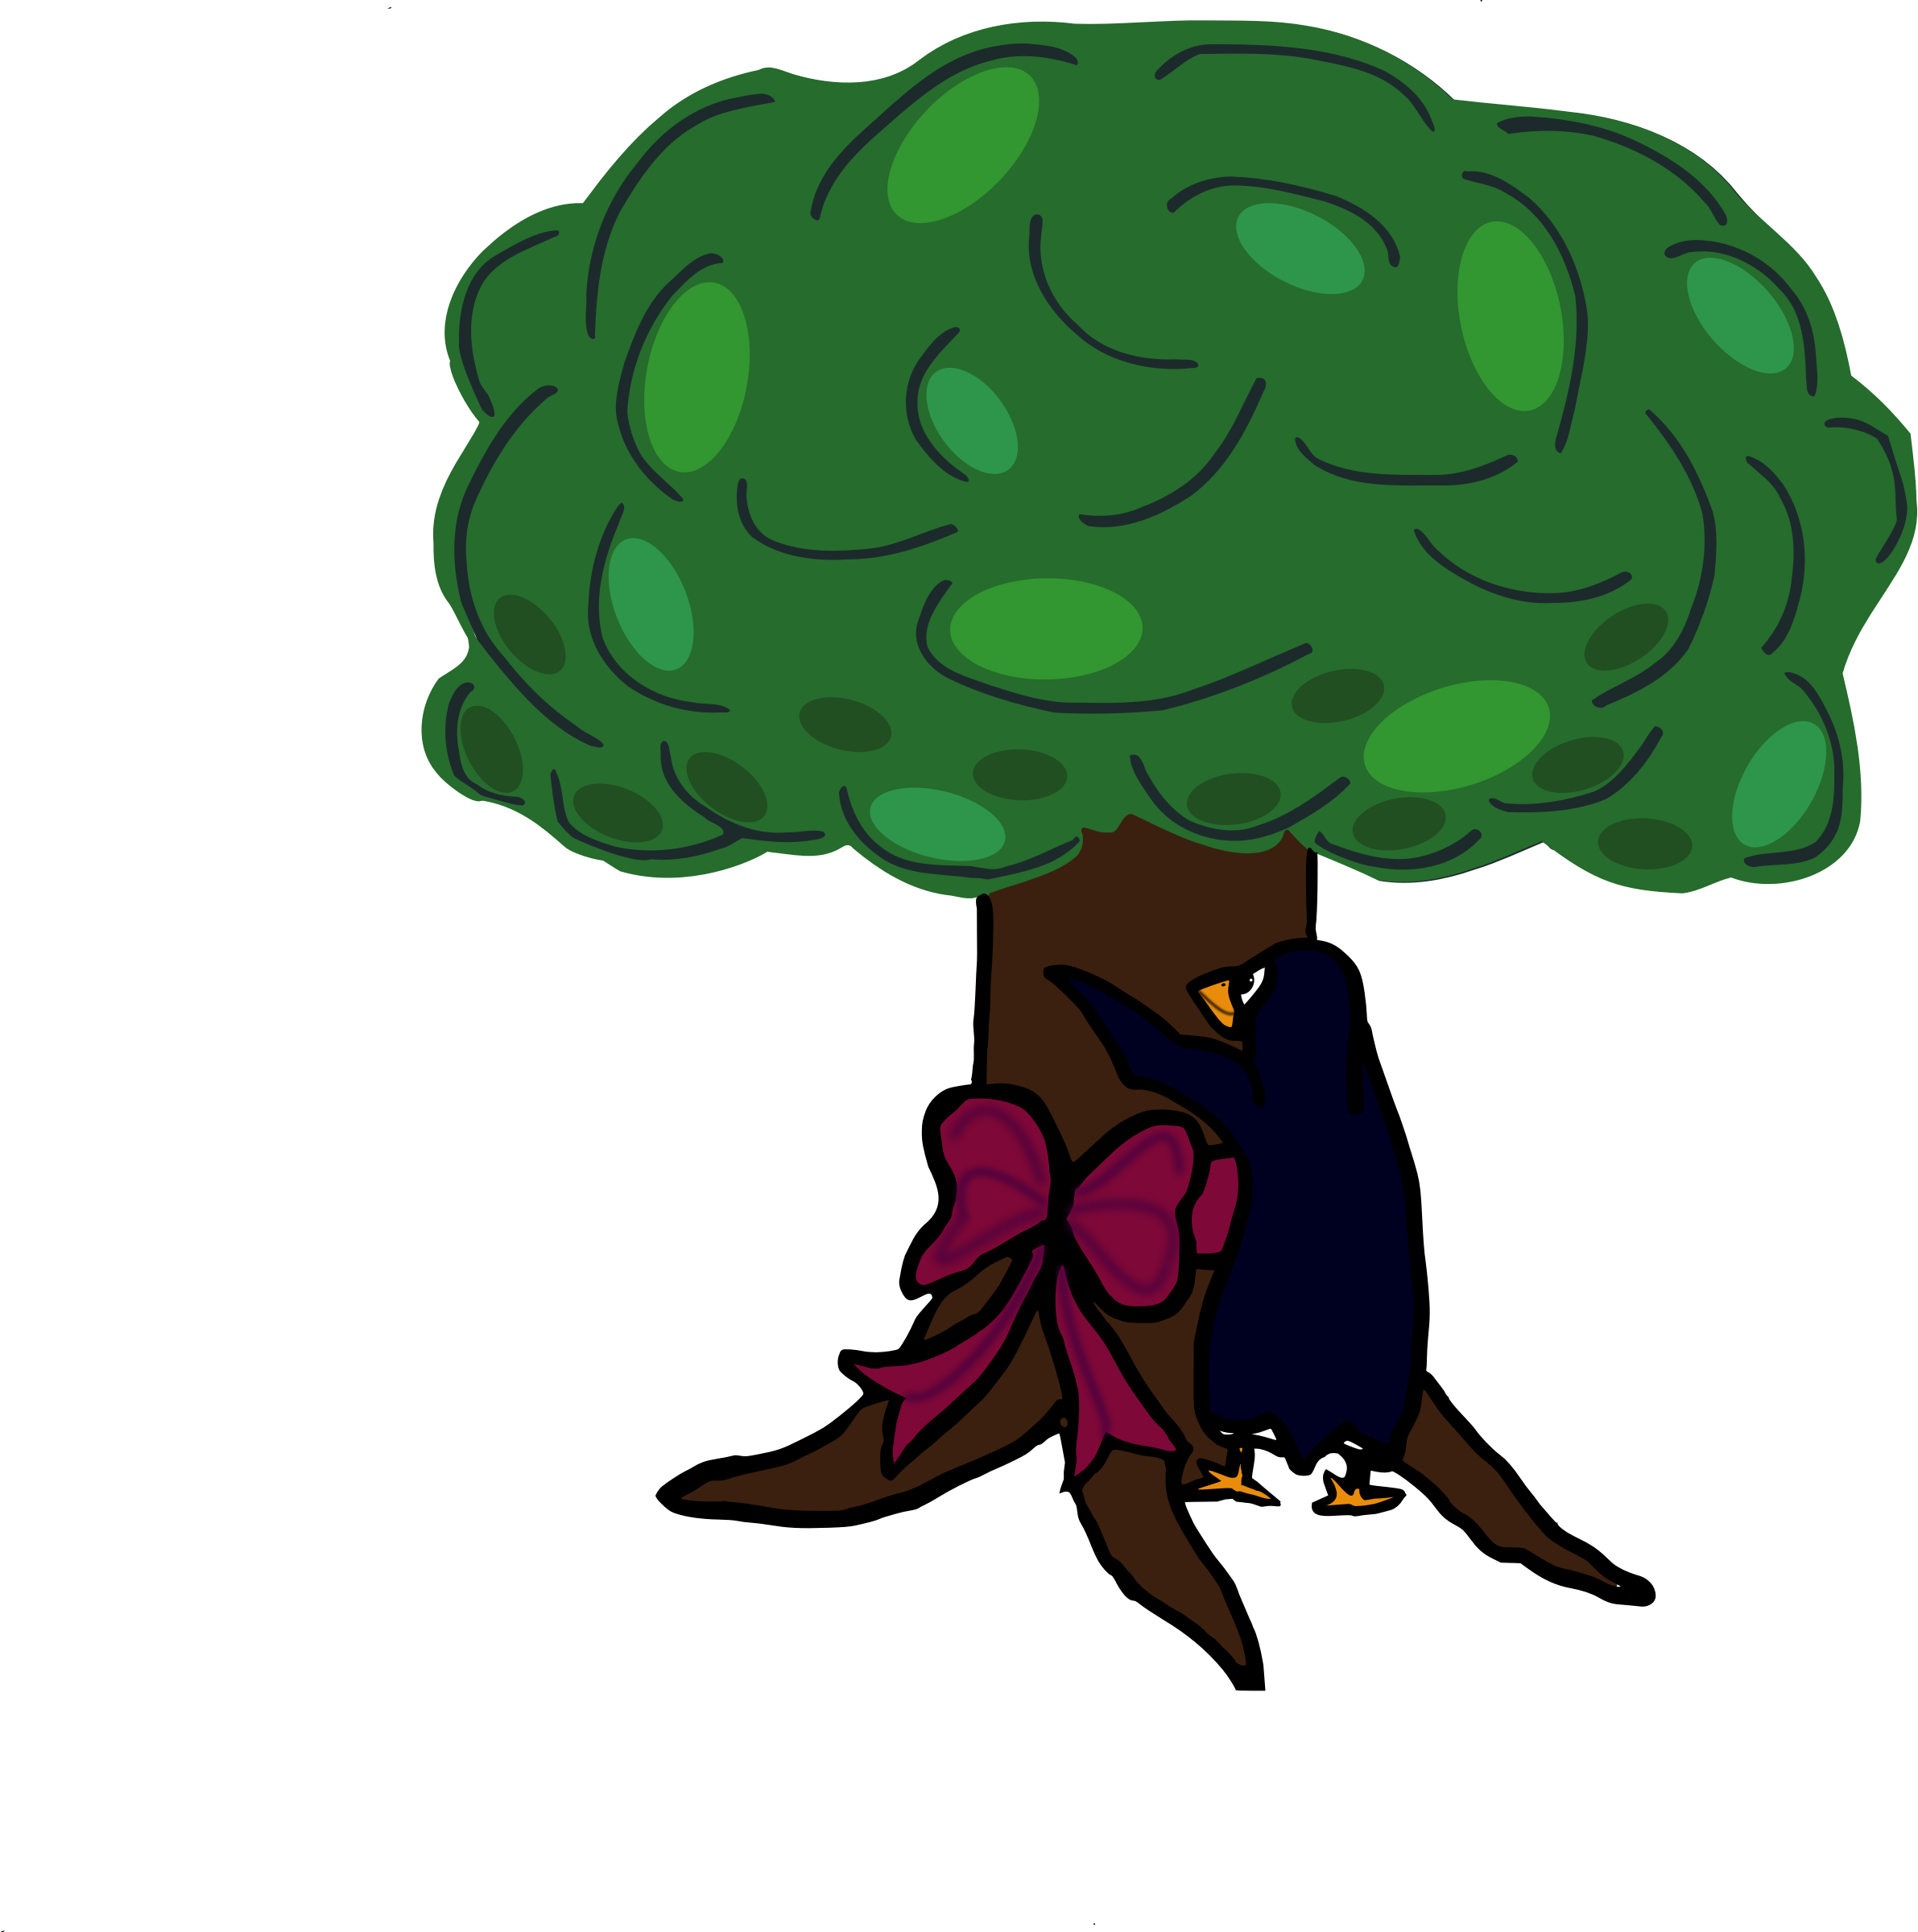 Tree clipart hug. Hugging a collection loving